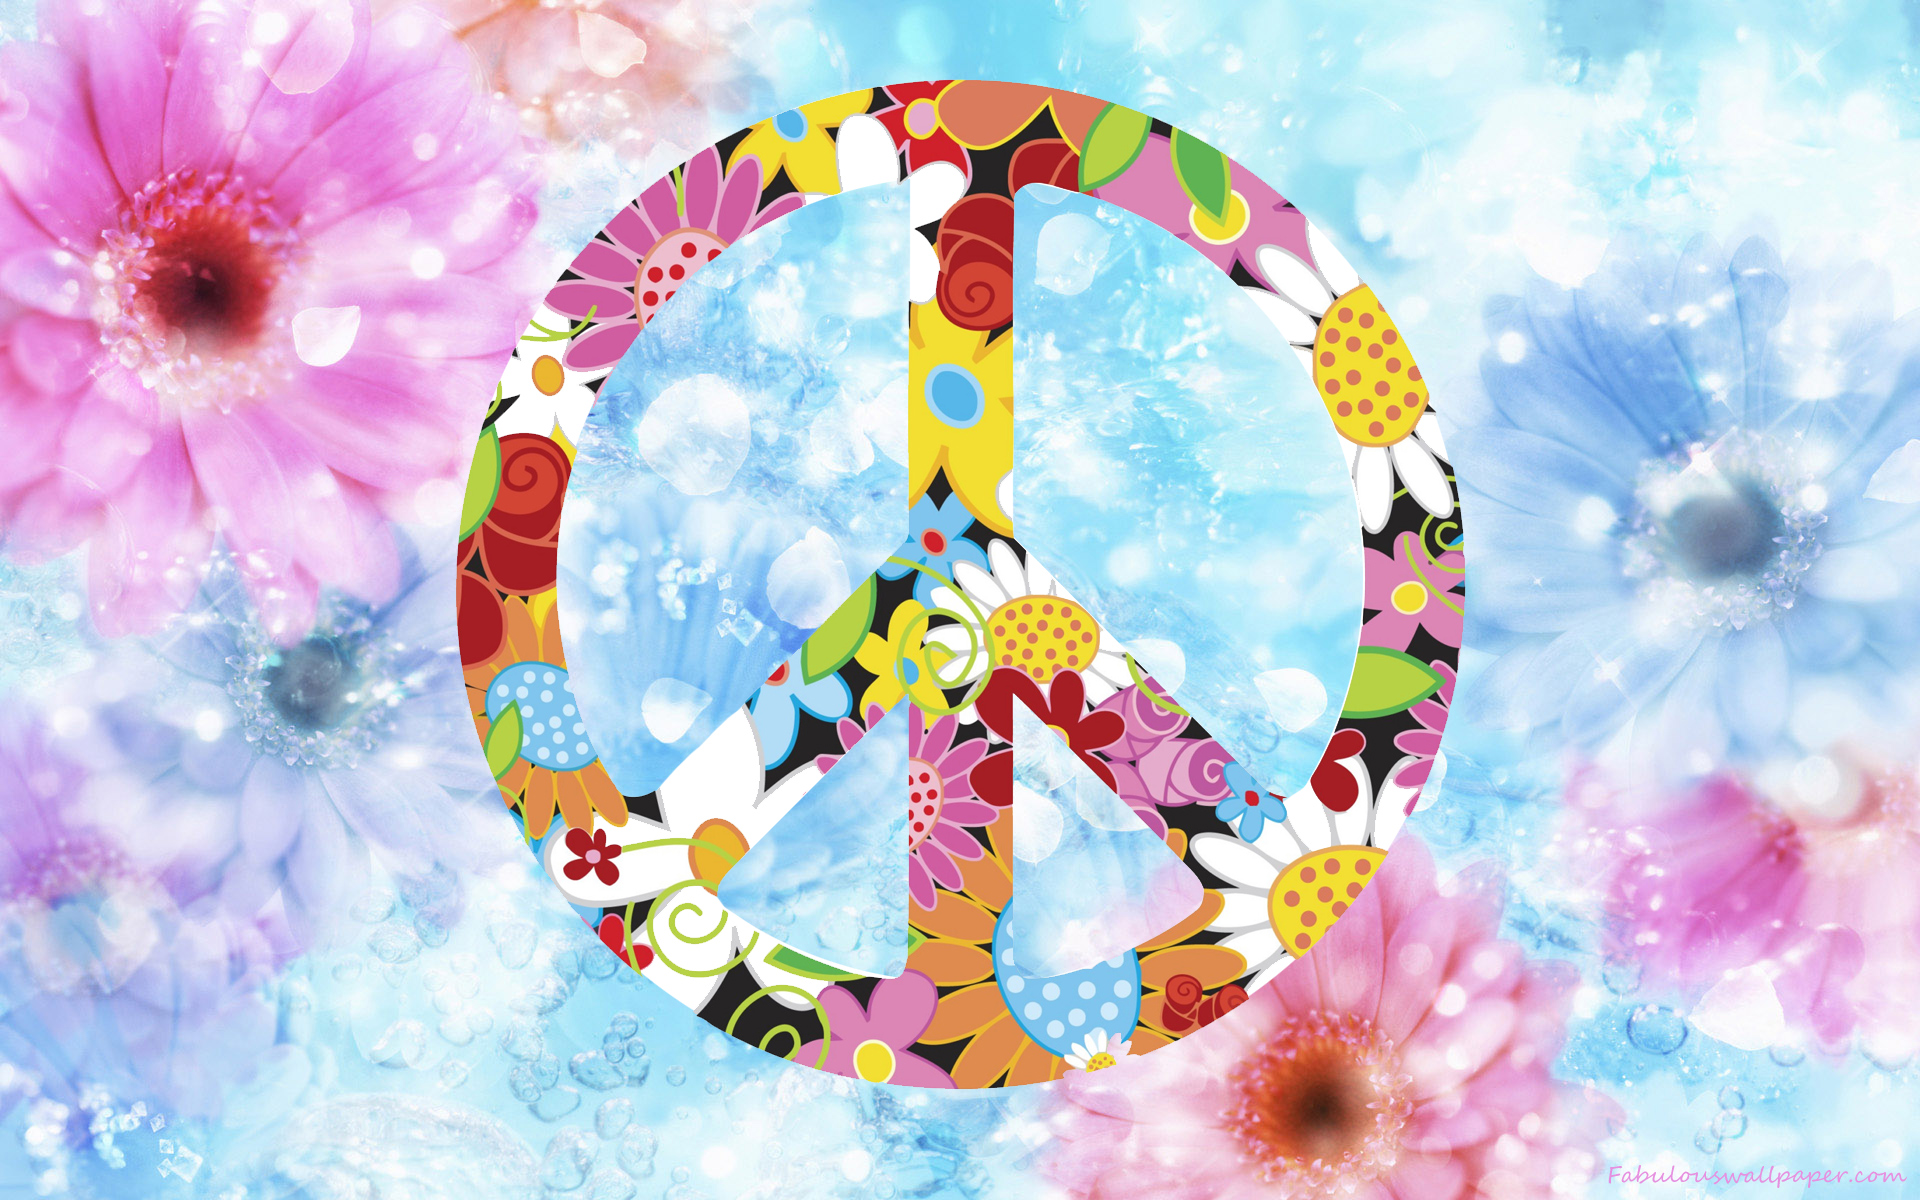 peace your screen resolution to download click on peace day flowers hd 1920x1200